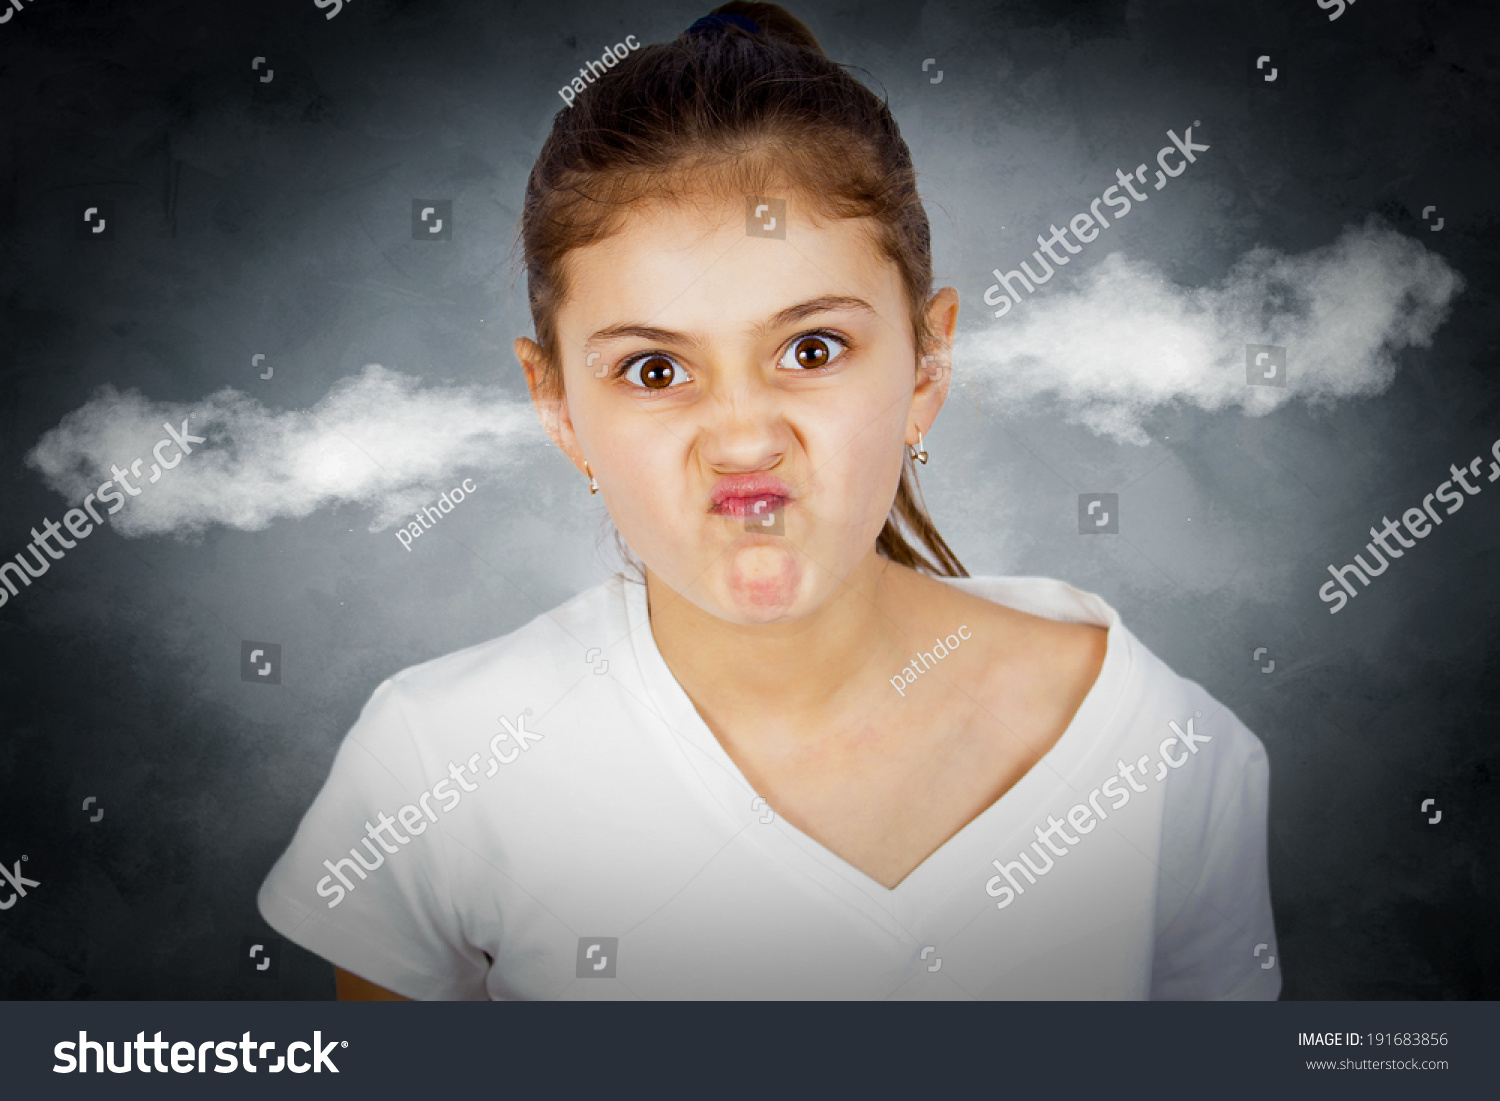 Grimace face clip art stock photo woman pulls a face in upset - Closeup Portrait Angry Young Girl Blowing Steam Coming Out Of Ears About Have Nervous